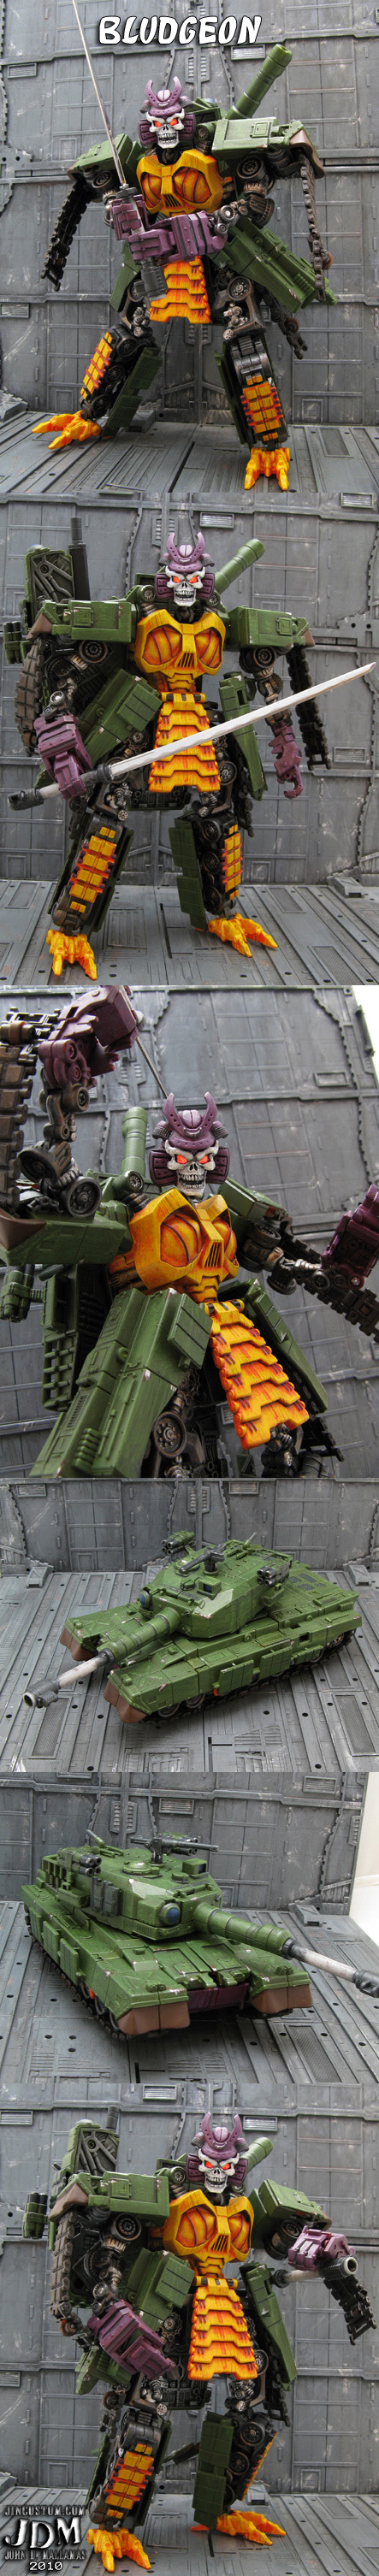 Custom Bludgeon